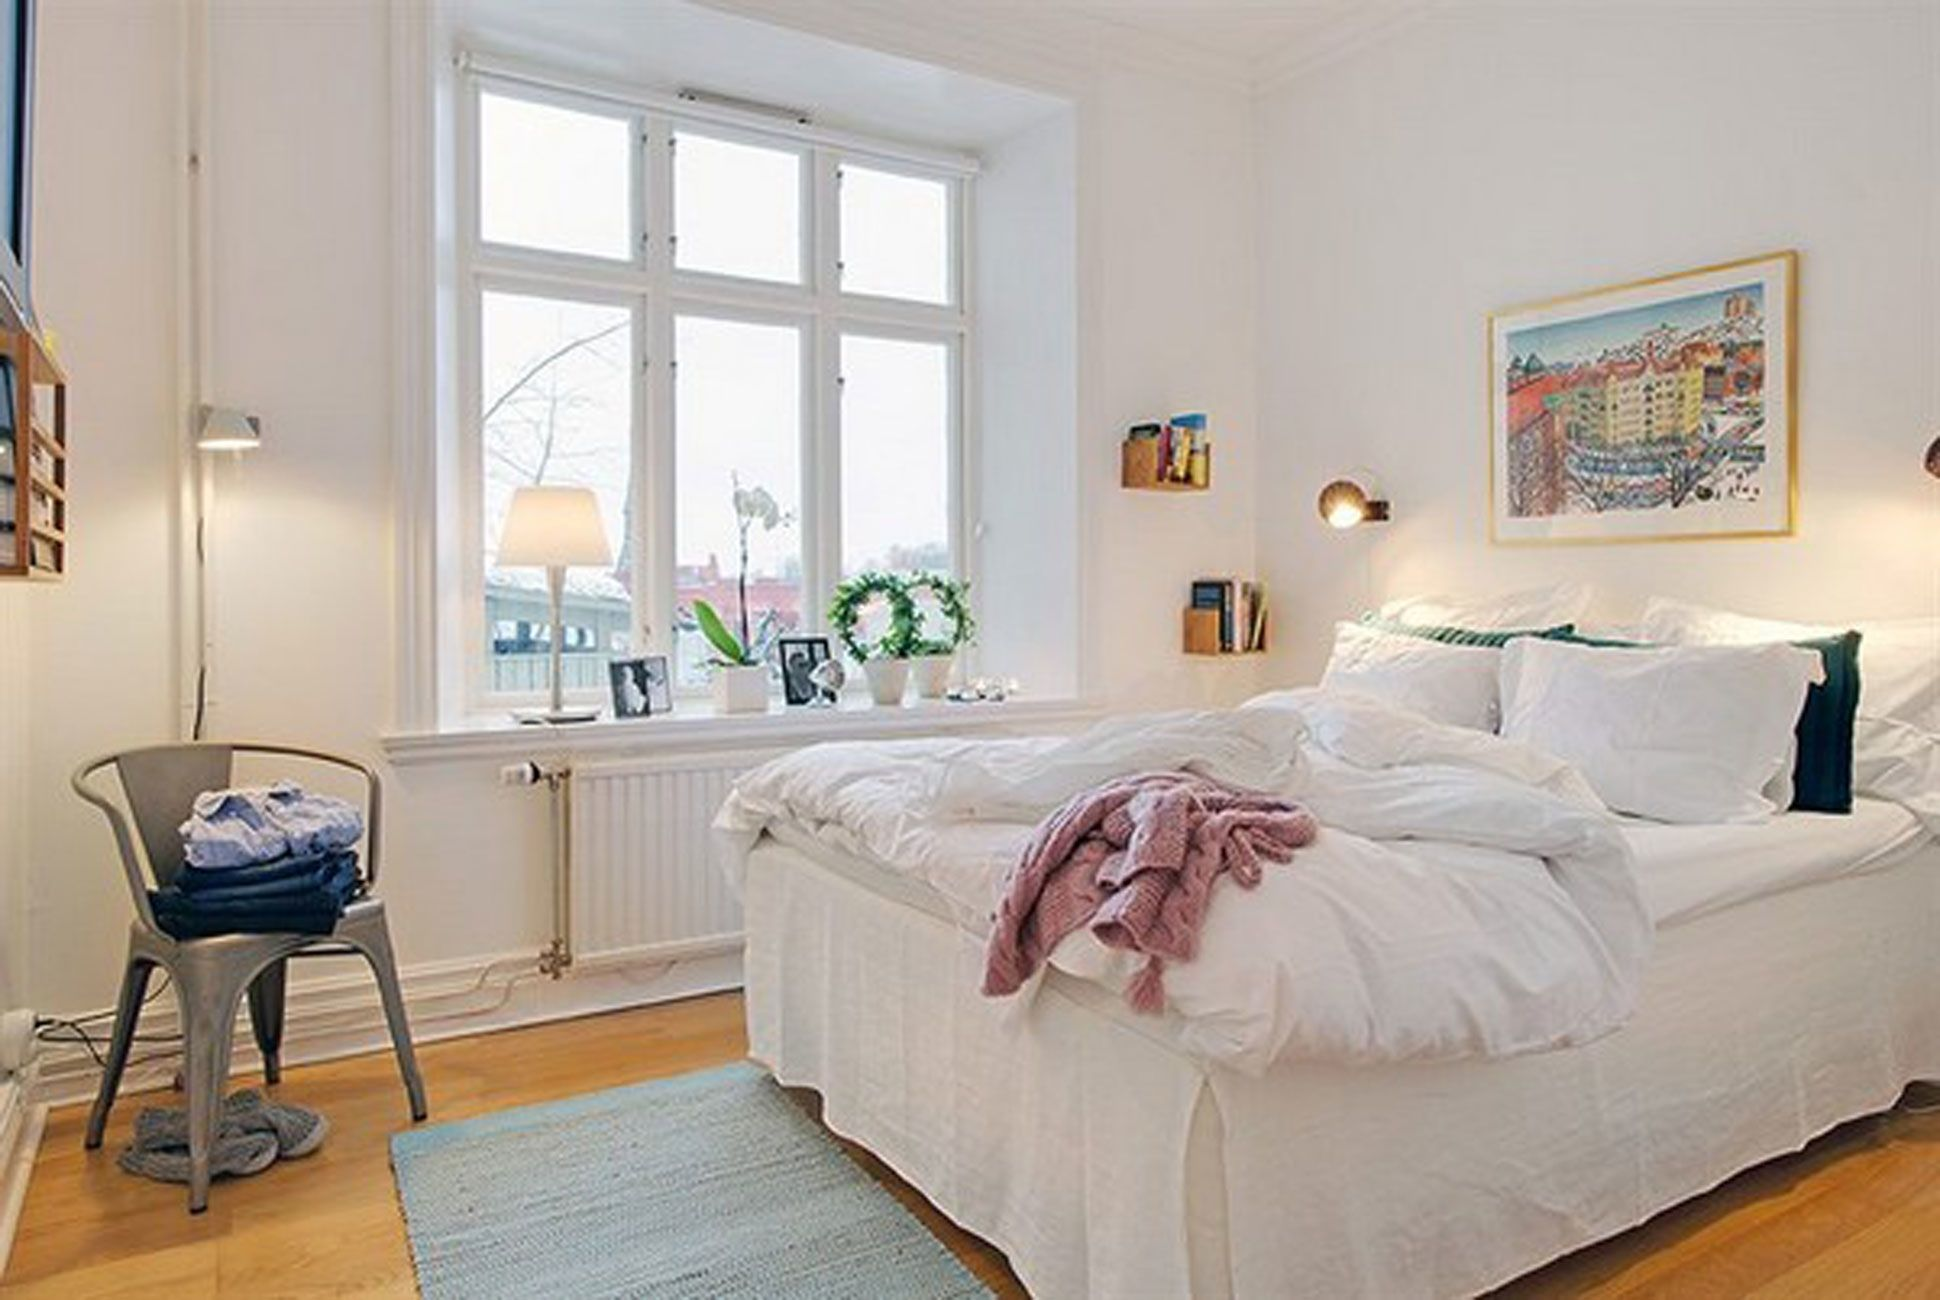 Apartment Bedroom Decorating Ideas Captivating Image Result For How To Decorate A Shabby Chic Tiny Studio Review